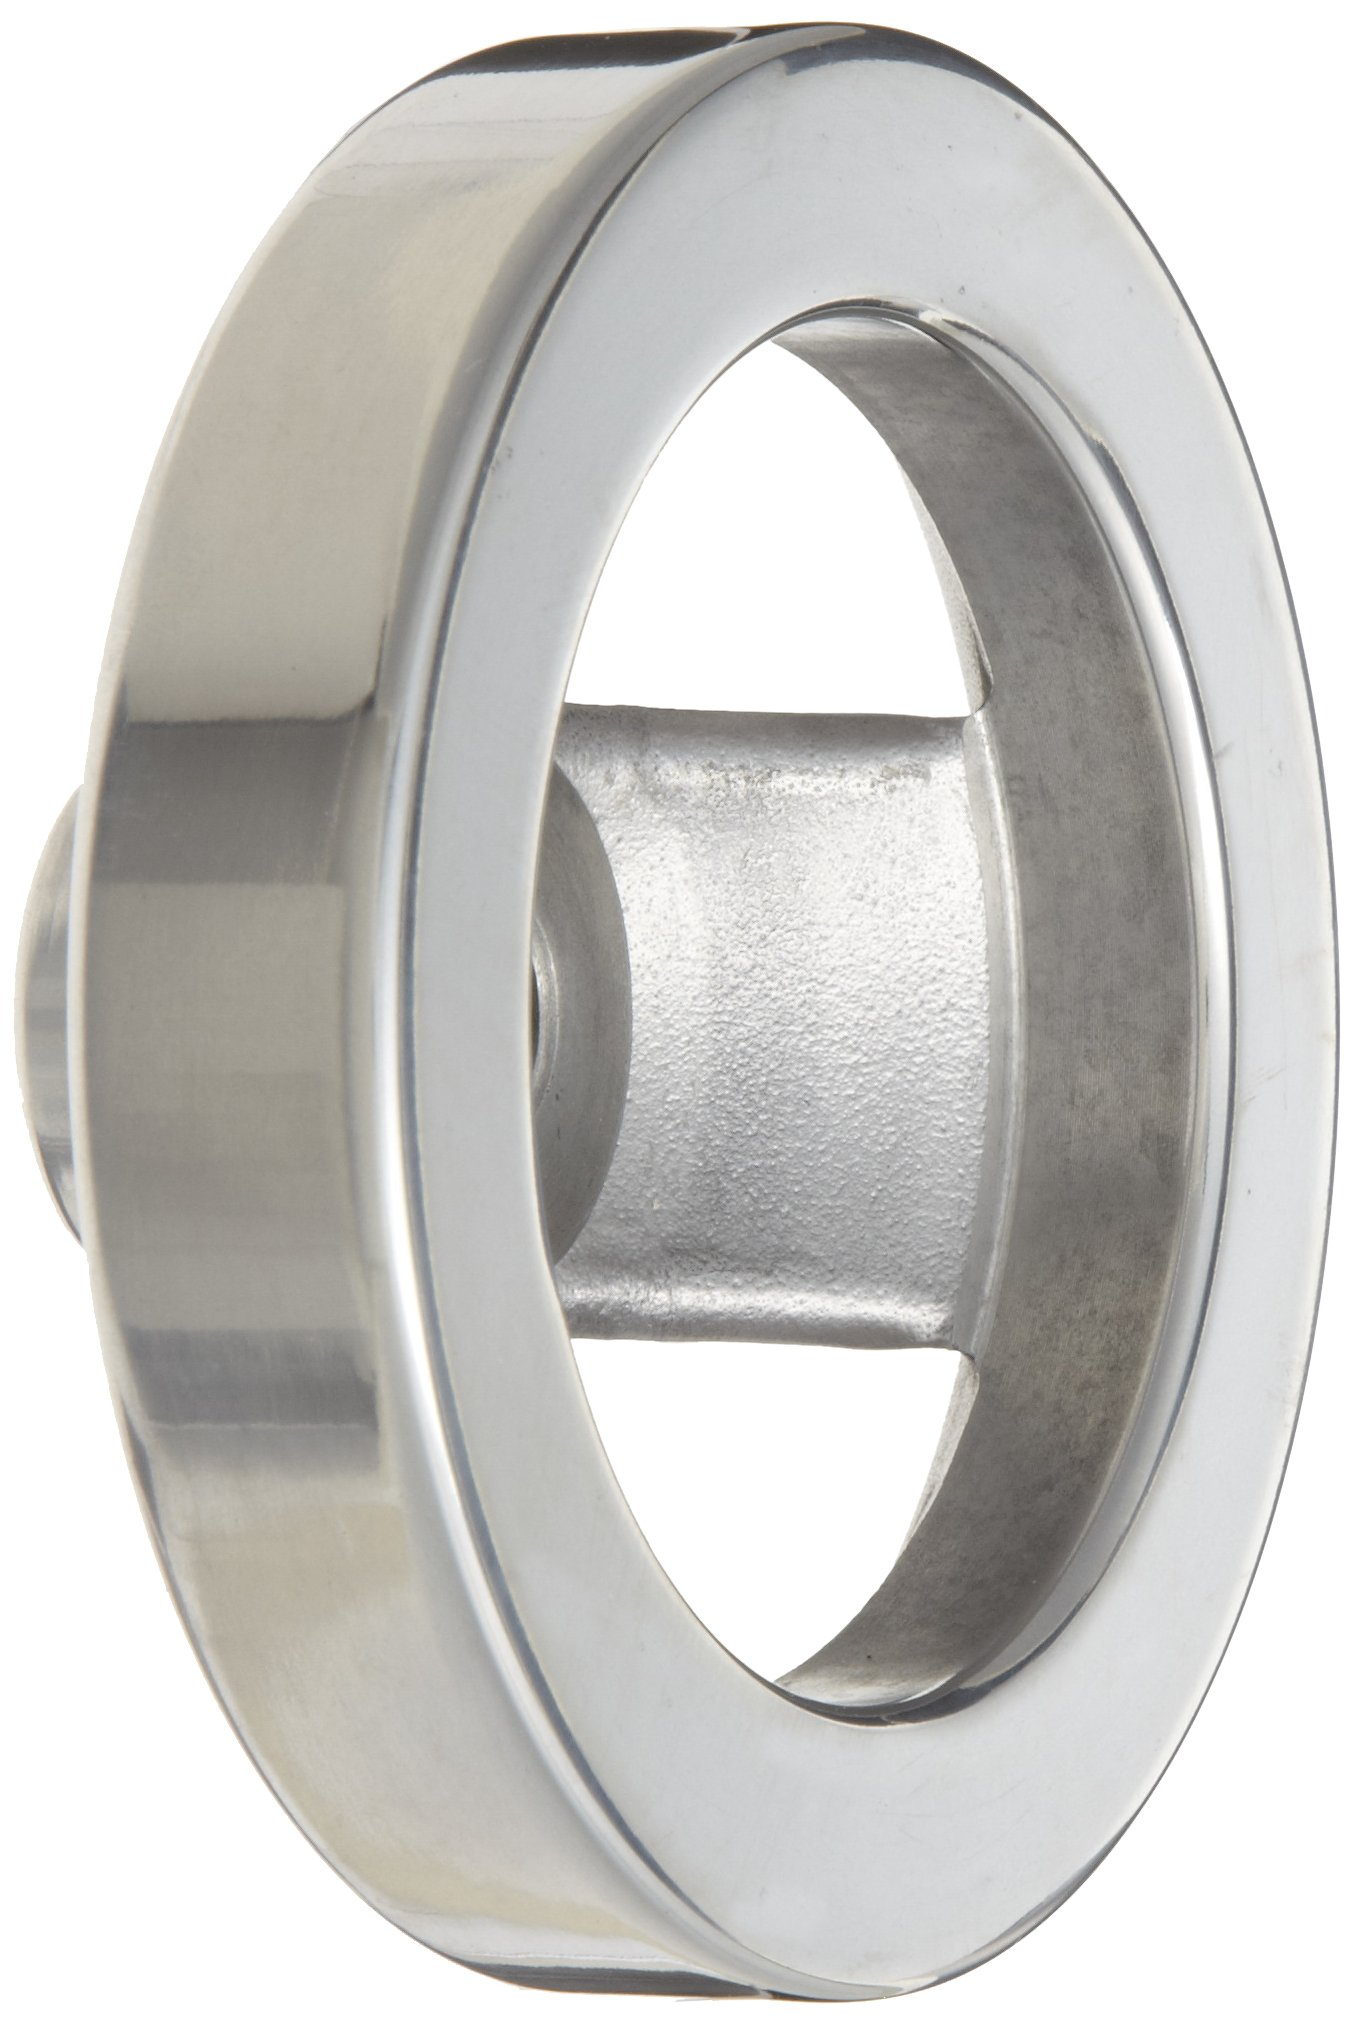 2 Spoked Polished Aluminum Dished Hand Wheel without Handle, 4'' Diameter, 1/2'' Hole Diameter, (Pack of 1)